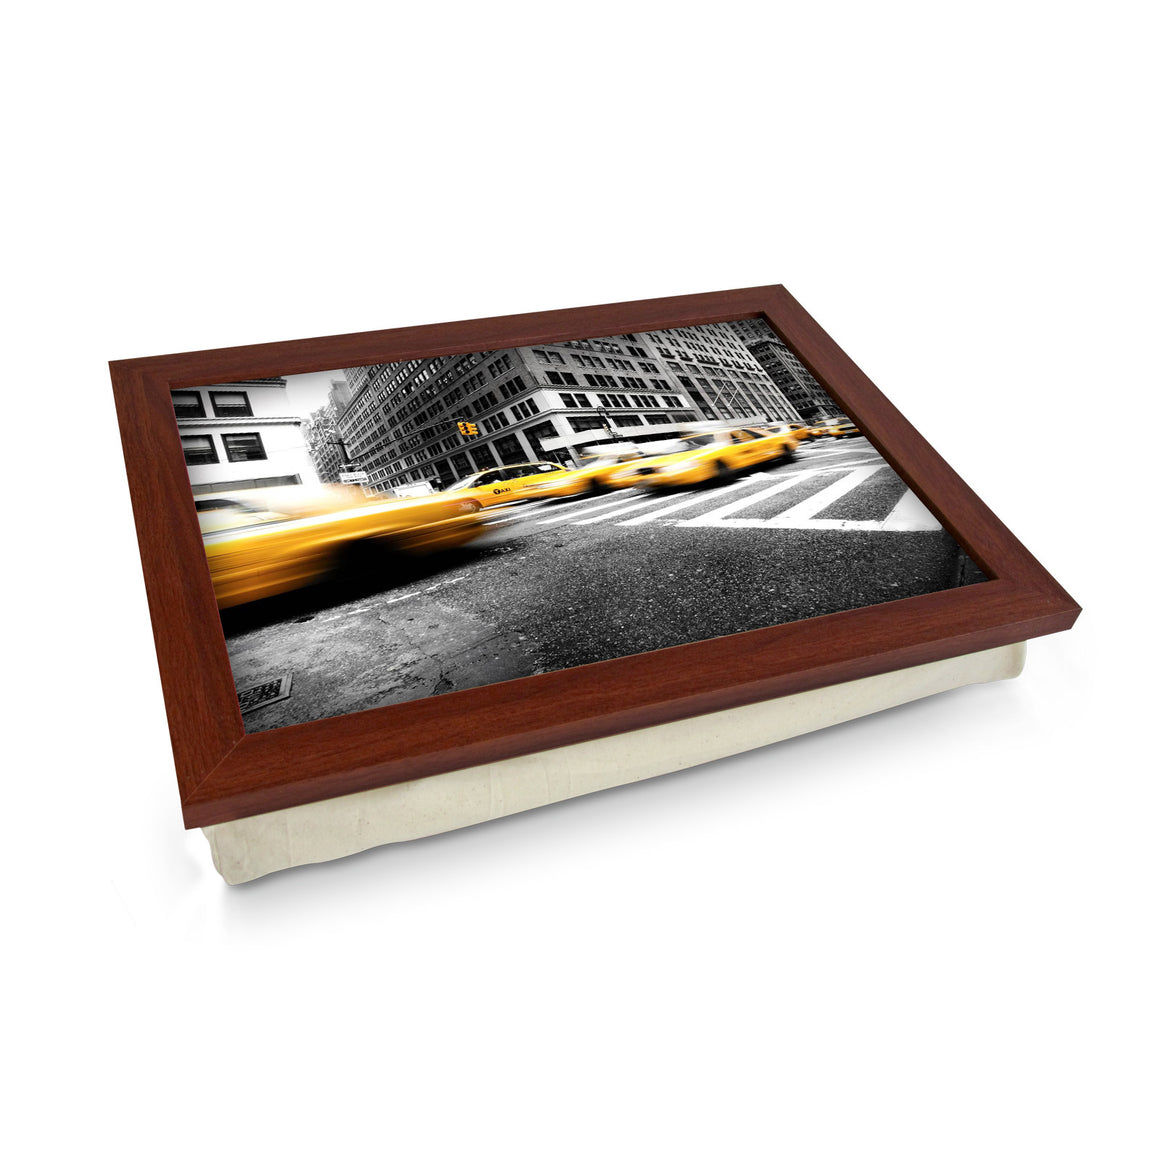 New York Taxi Lap Tray - L0438